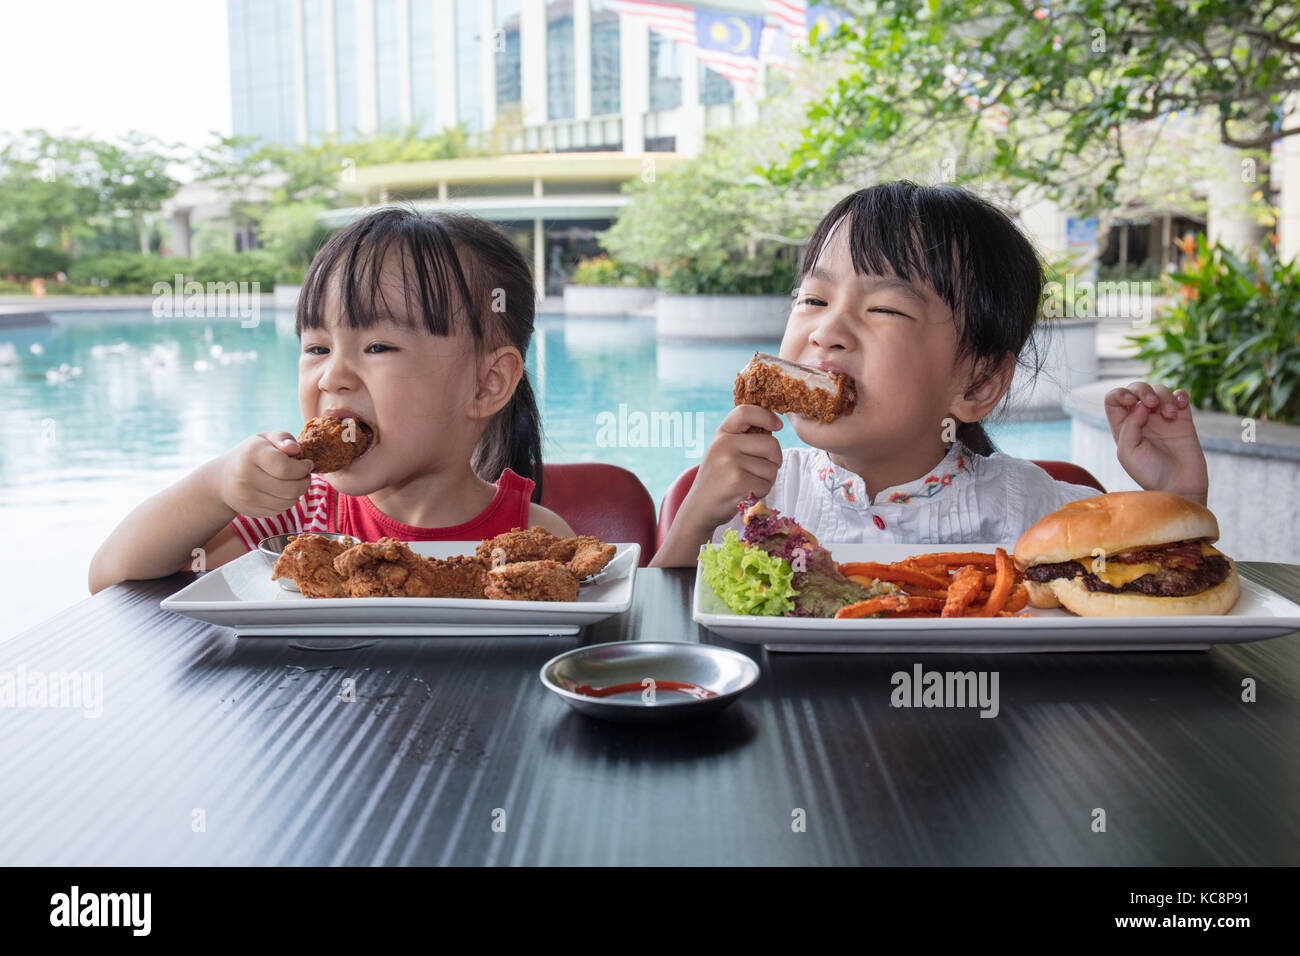 Asian Little Chinese Girls Eating Burger and Fried chicken at Outdoor Cafe - Stock Image